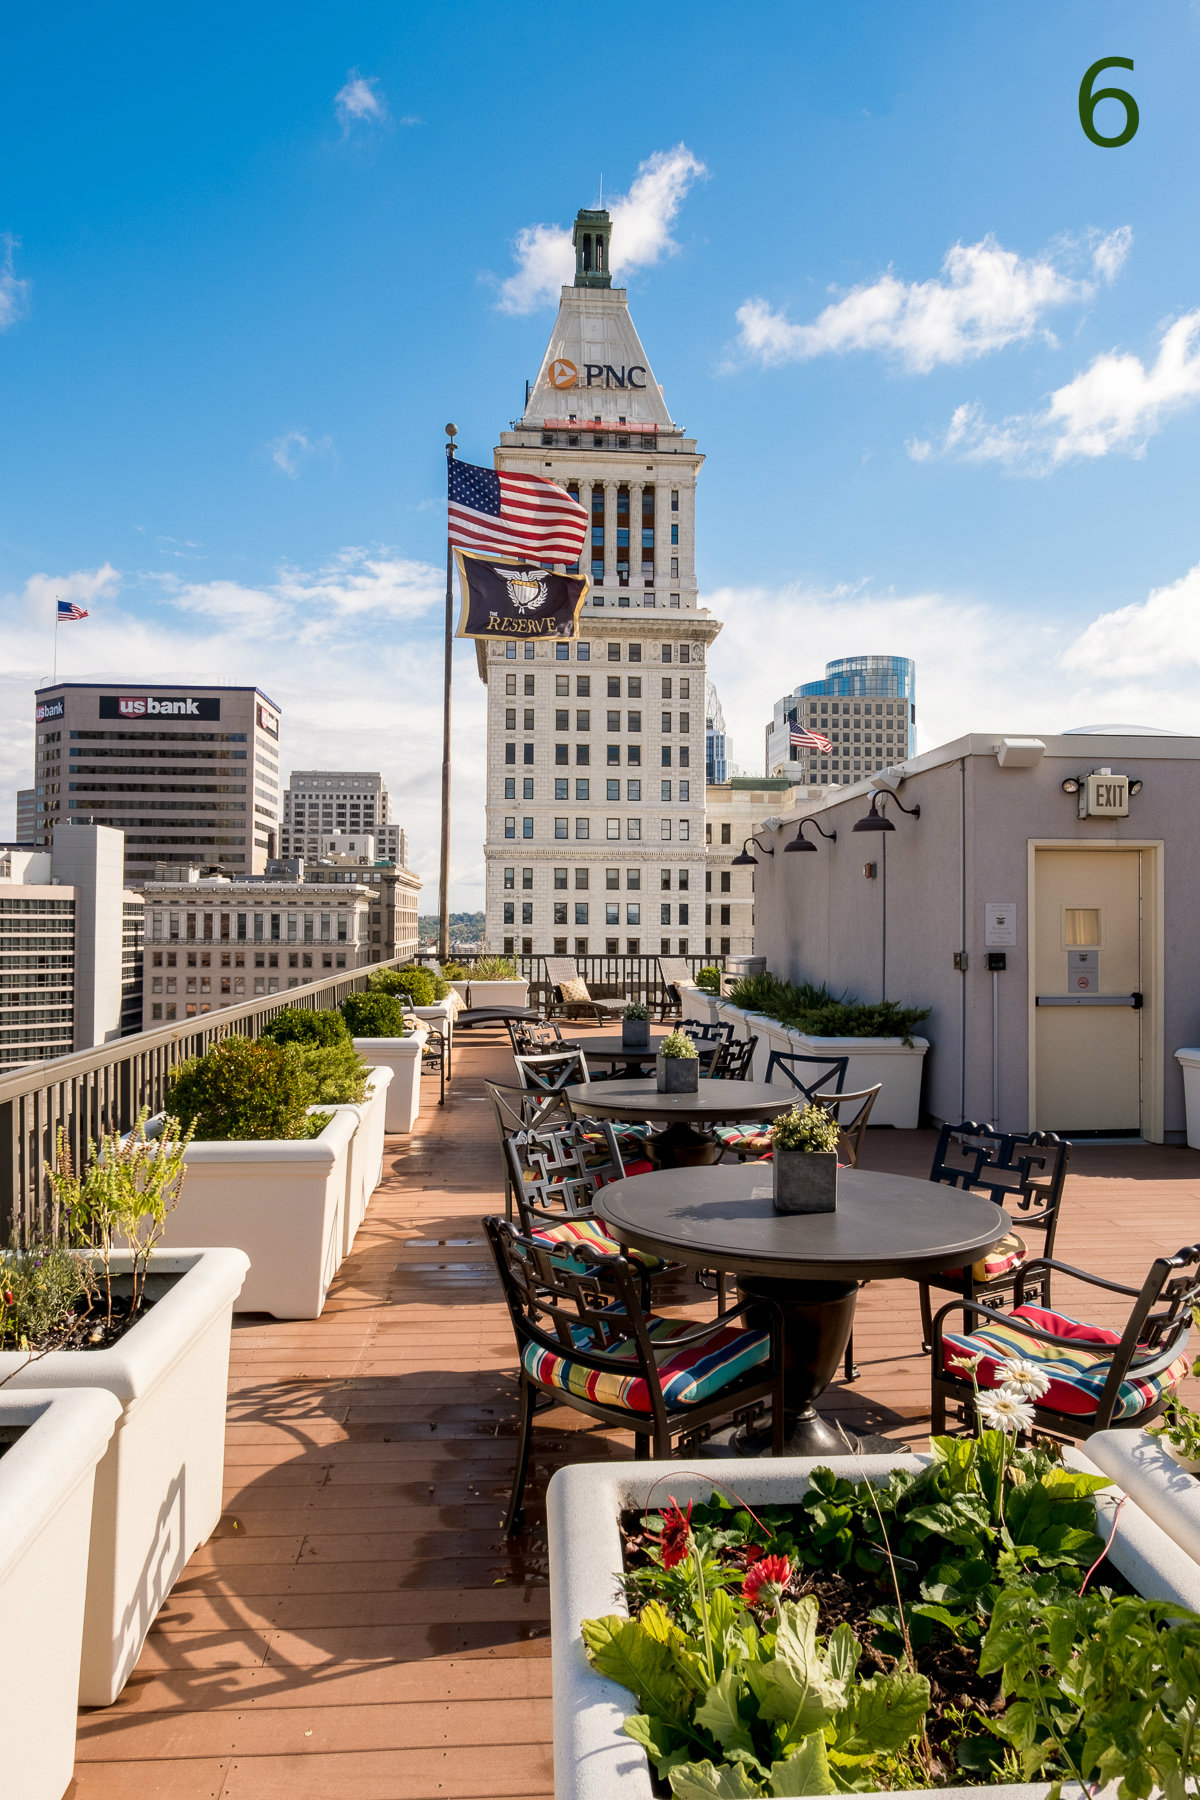 #6 - The Reserve building at 4th & Race has everything your boring apartment doesn't, including this killer rooftop deck. / Image: Daniel Smyth Photography